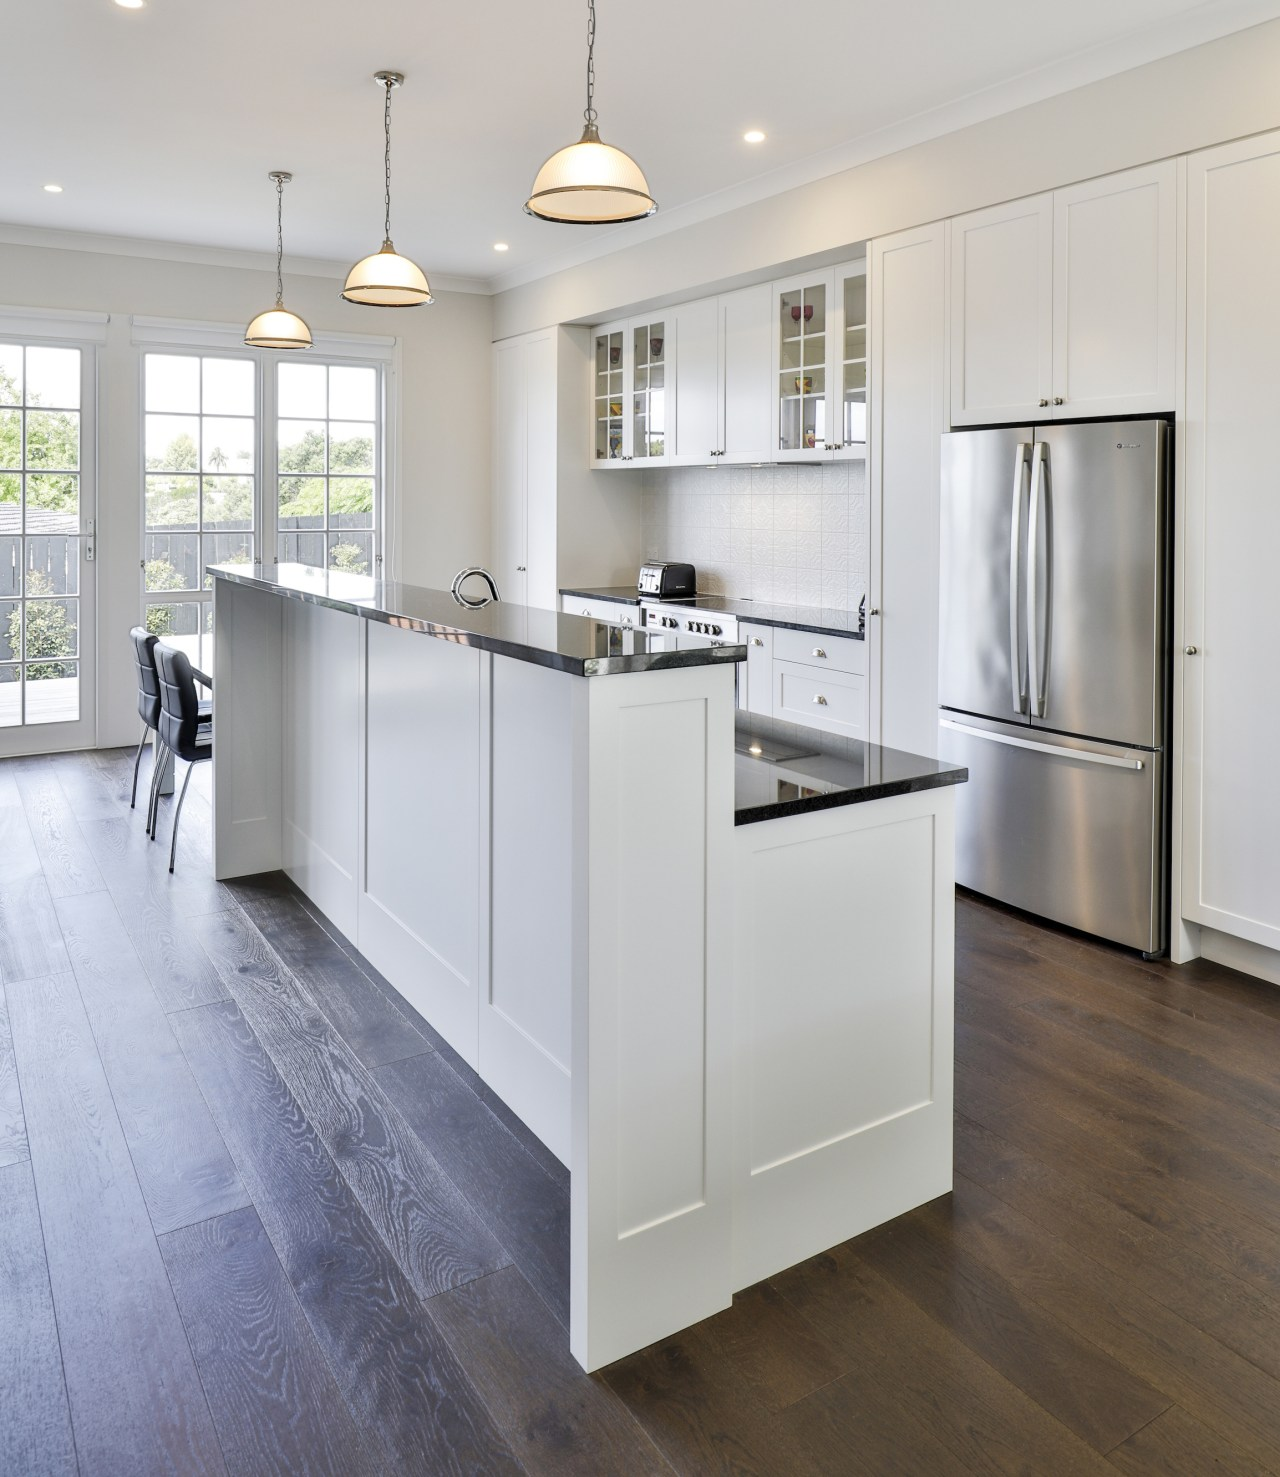 From every angle the kitchen exudes thoughtful design